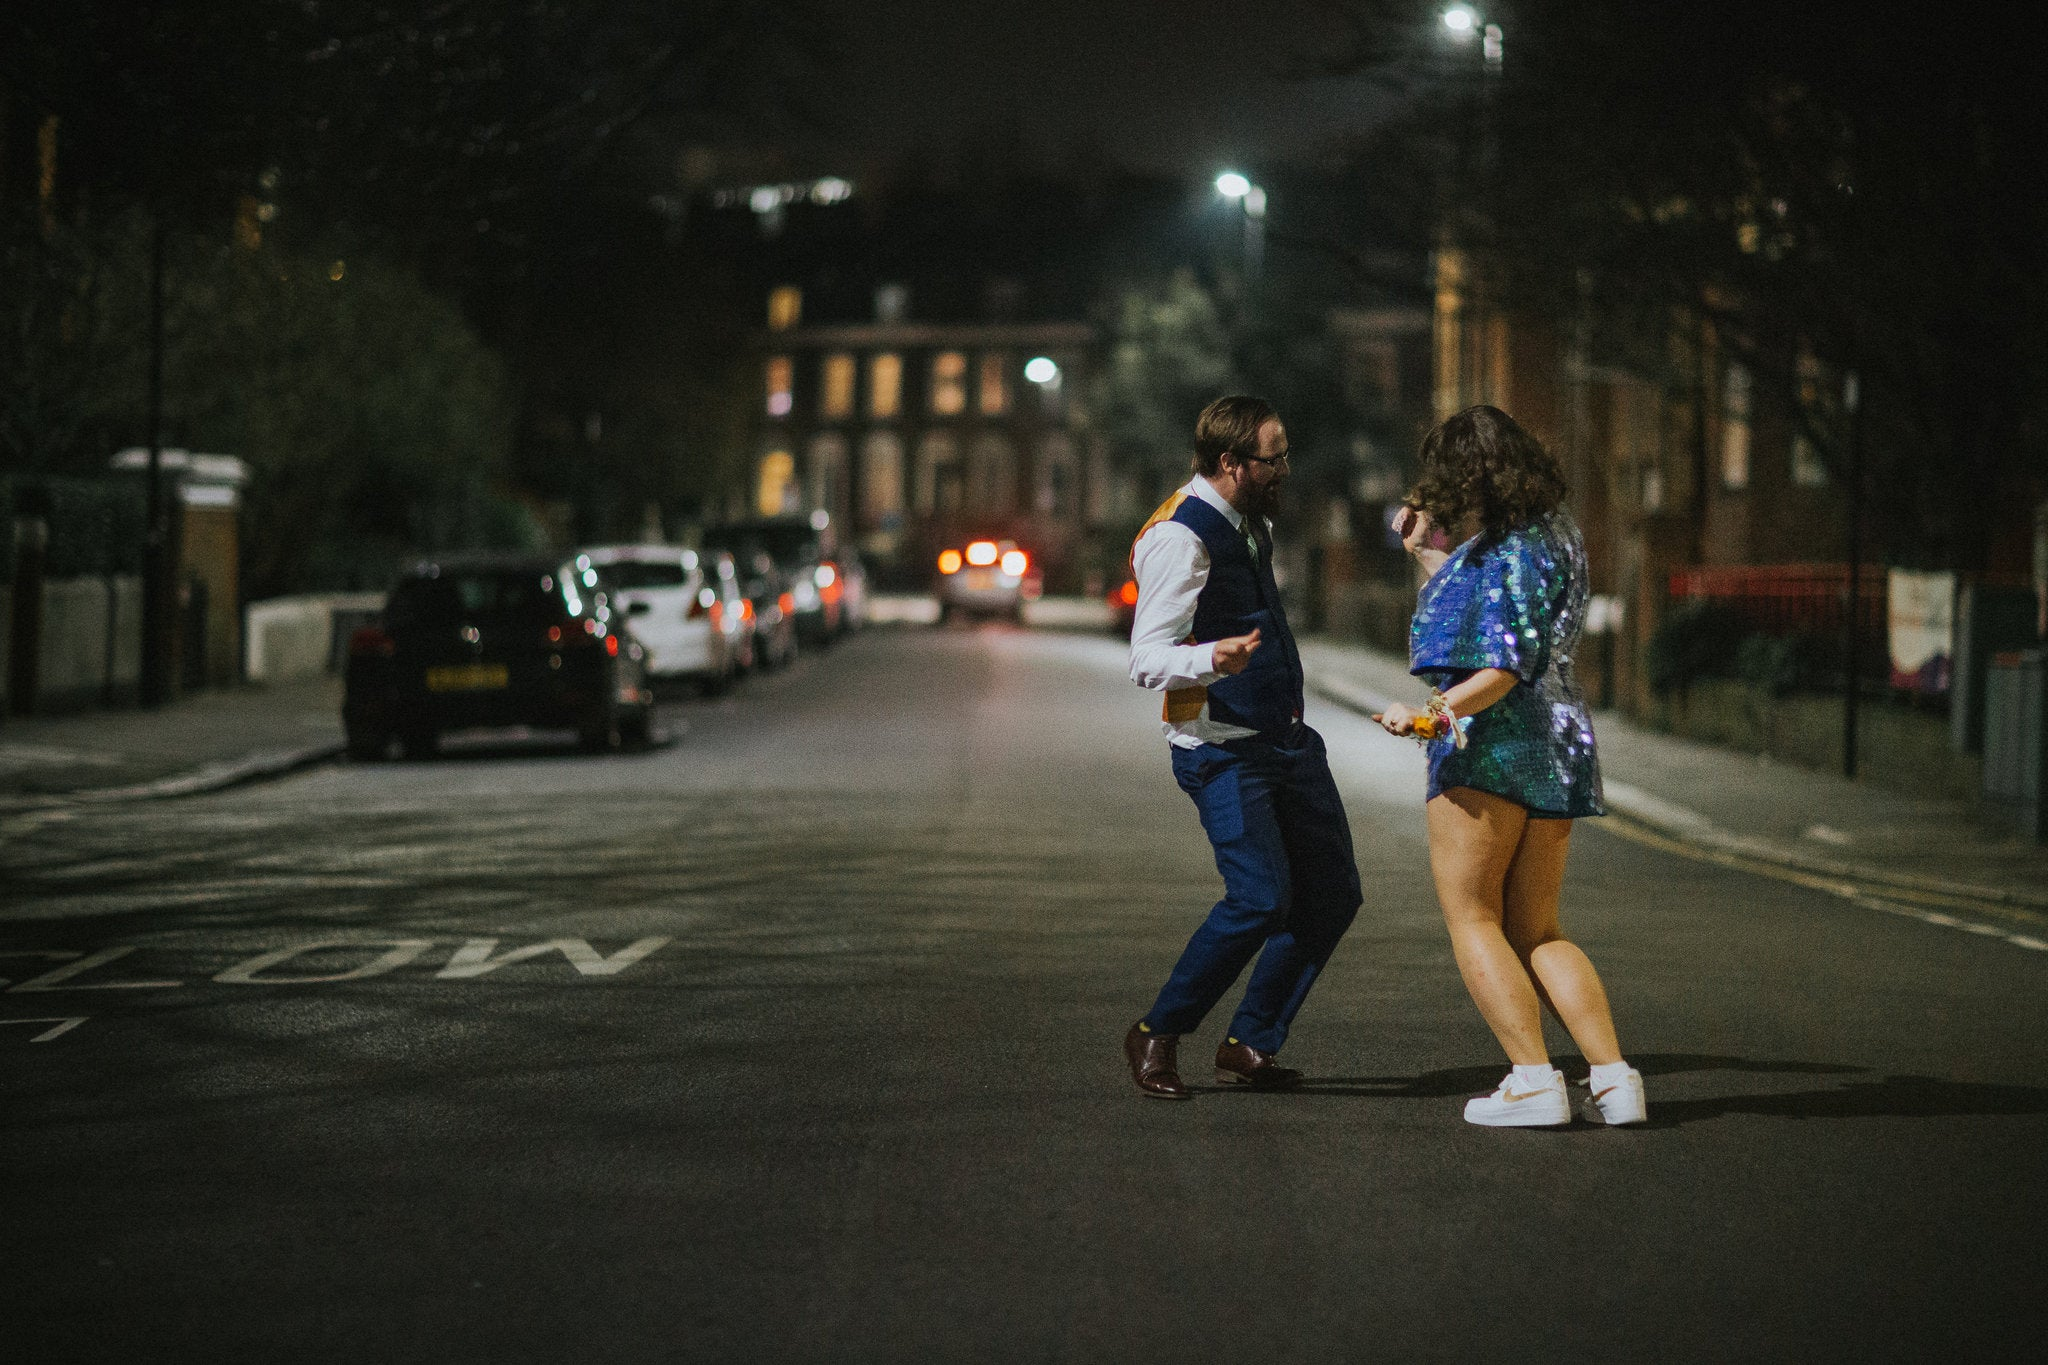 Woman wearing a blue sequin romper dances with a man in the street at night.